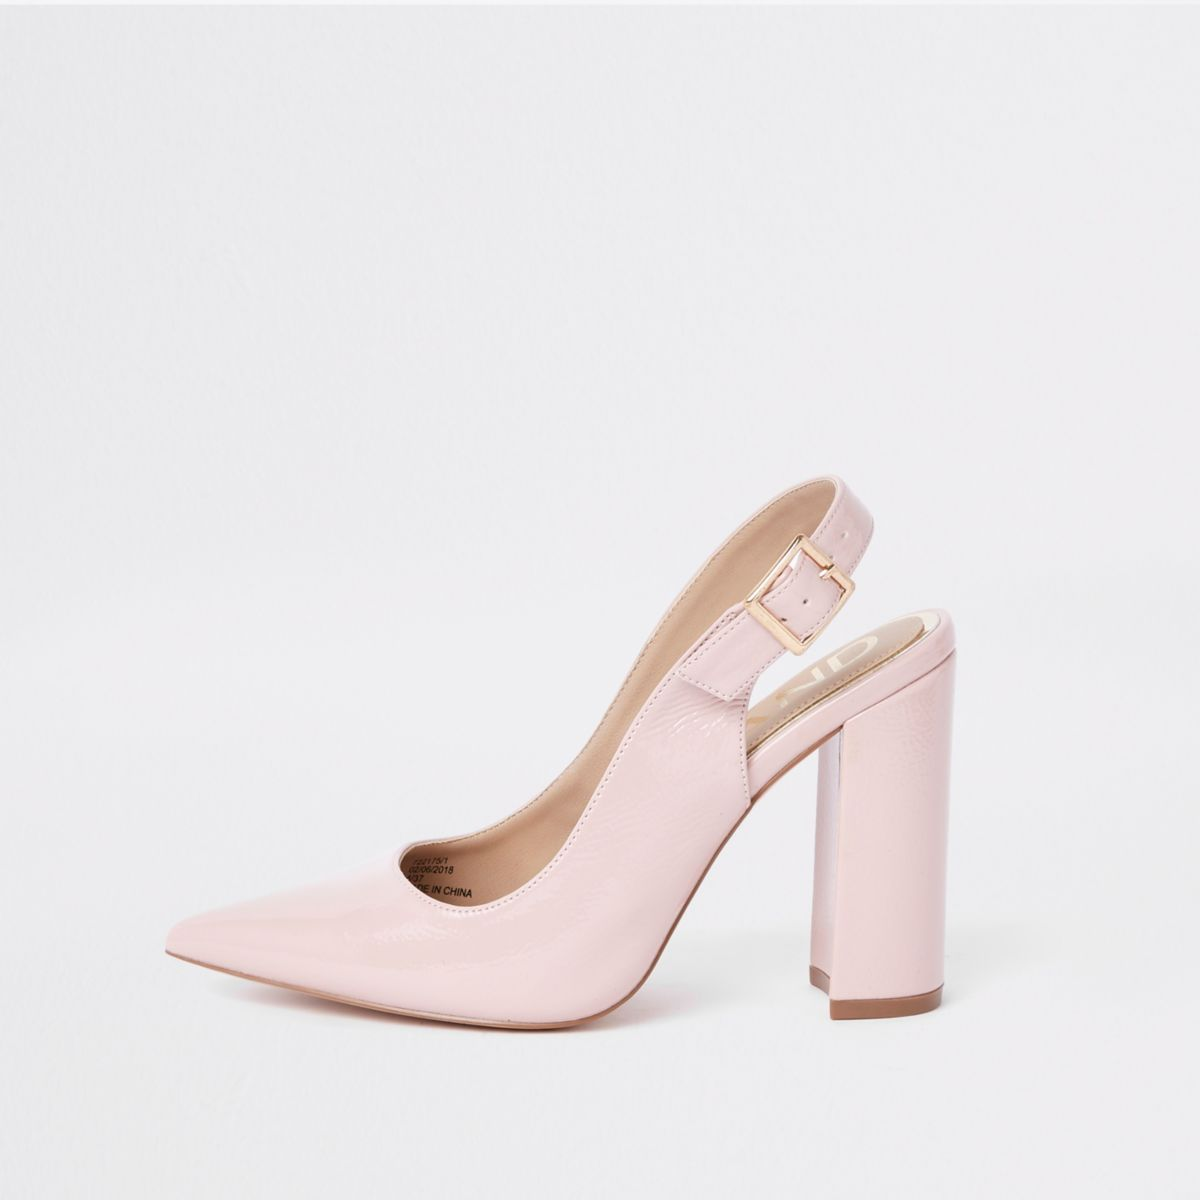 Pink block heel sling back pumps